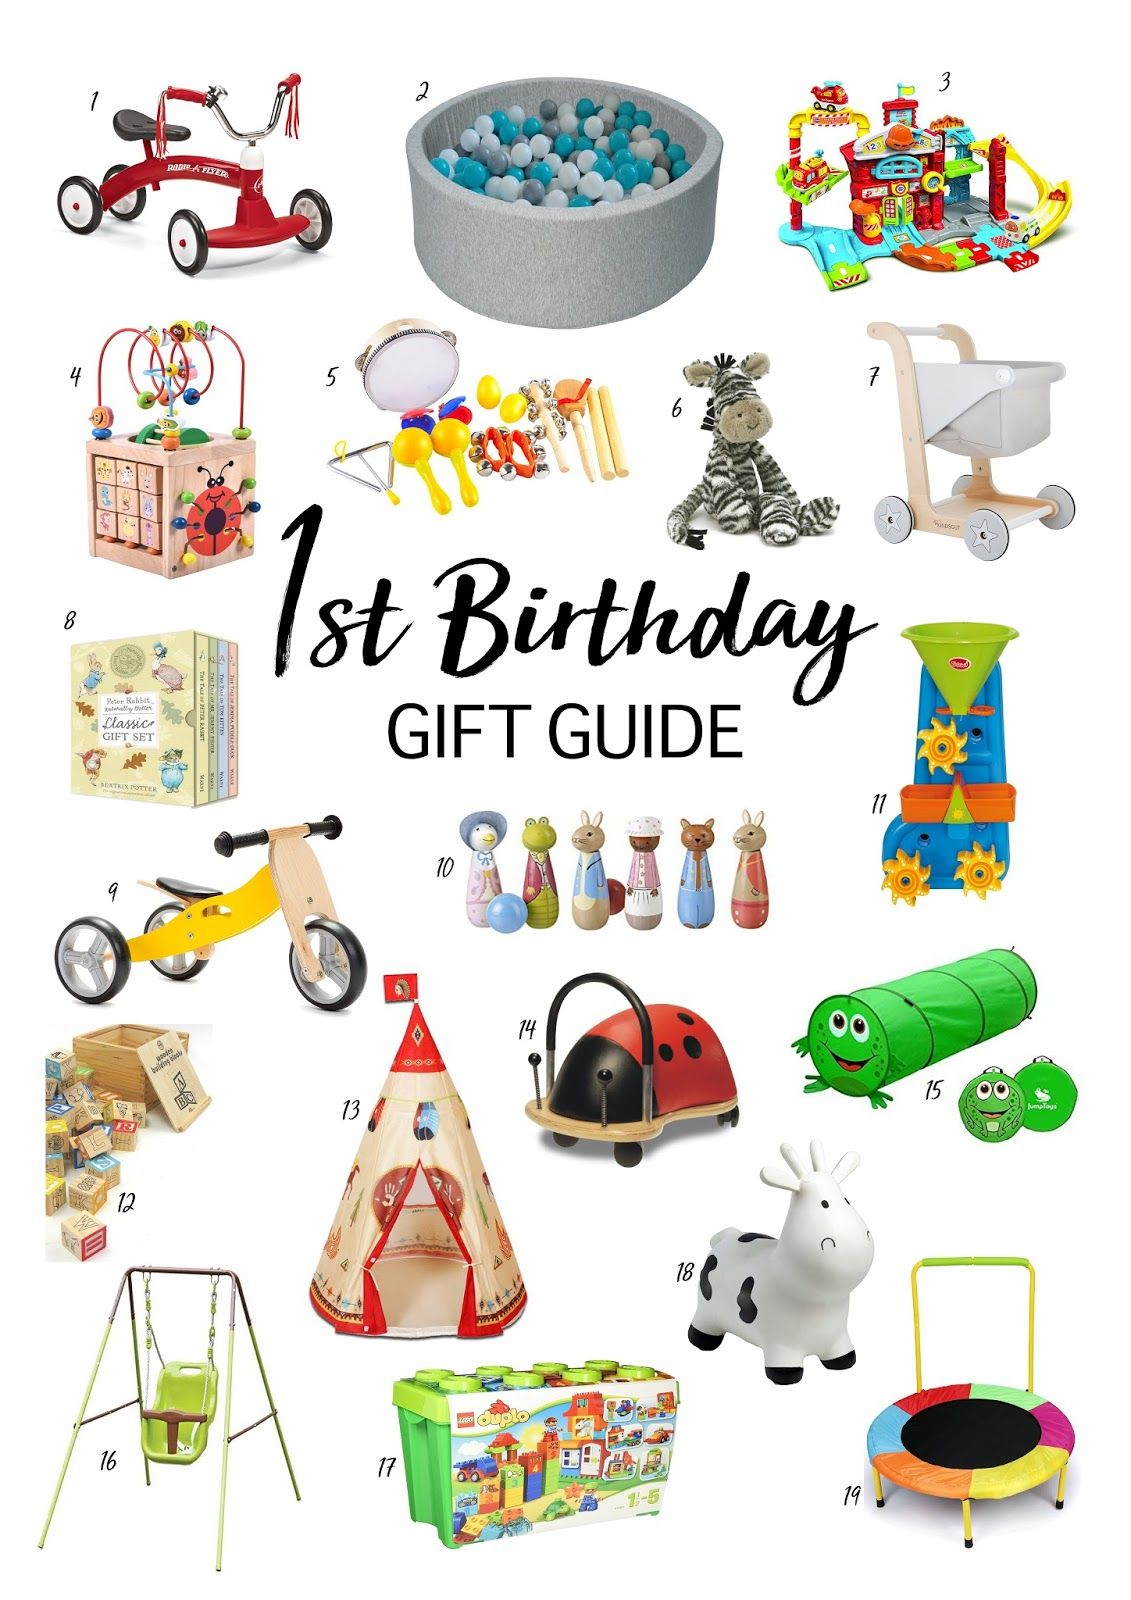 Gift Guide Ideas For 1st Birthday Presents